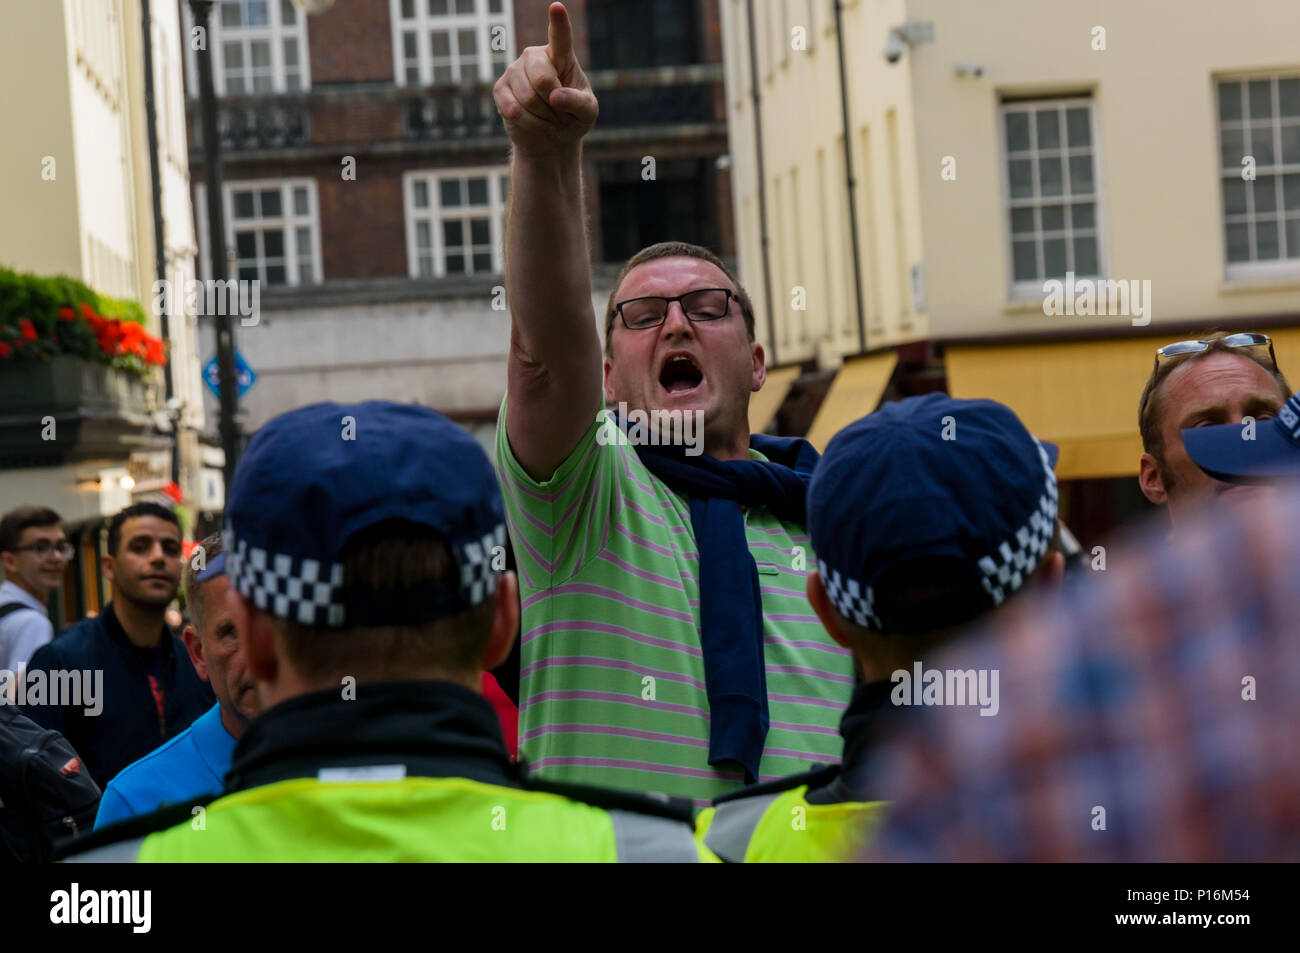 June 10, 2018 - London, UK. 10th June 2018. Police quickly led away a group of right-wing men who had come to disrupt the event as a large crowd squashed into the street in front of the Saudi Arabian embassy for a rally in support of the oppressed people of Palestine and others around the world. This man shouts insults and points at the protesters and press as police lead him away. The event, organised by the Justice for Palestine Committee, is supported by the Islamic Human Rights Commission and a wide range of pro-Palestinian organisations, and was opposed by the Zionist Federation and some  - Stock Image